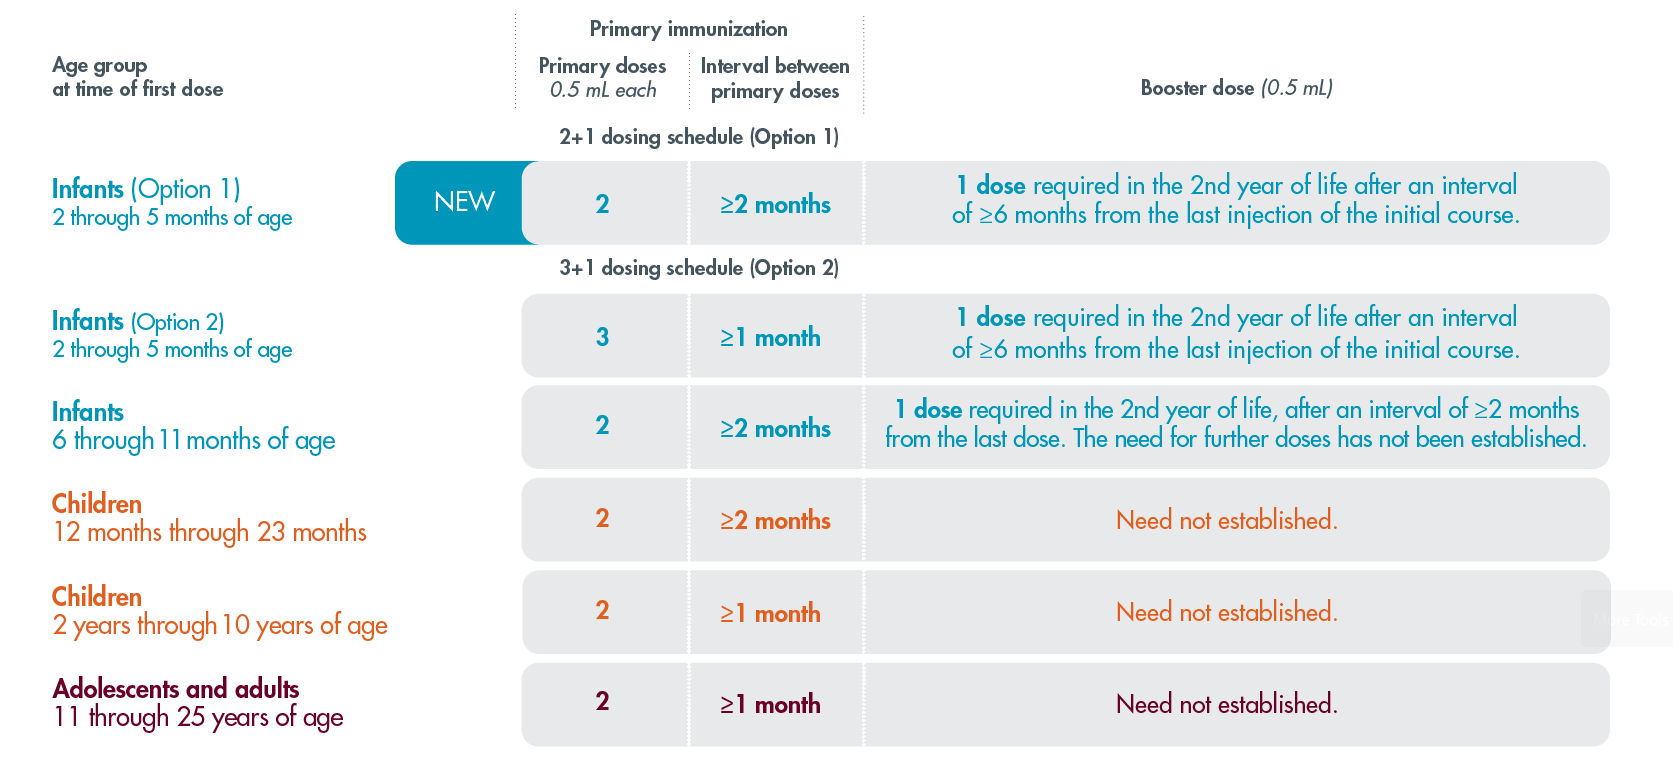 The table shows the Recommended dosing schedule for BEXSERO. For a detailed description of the table, please contact GSK customer service at 1-800-387-7374.